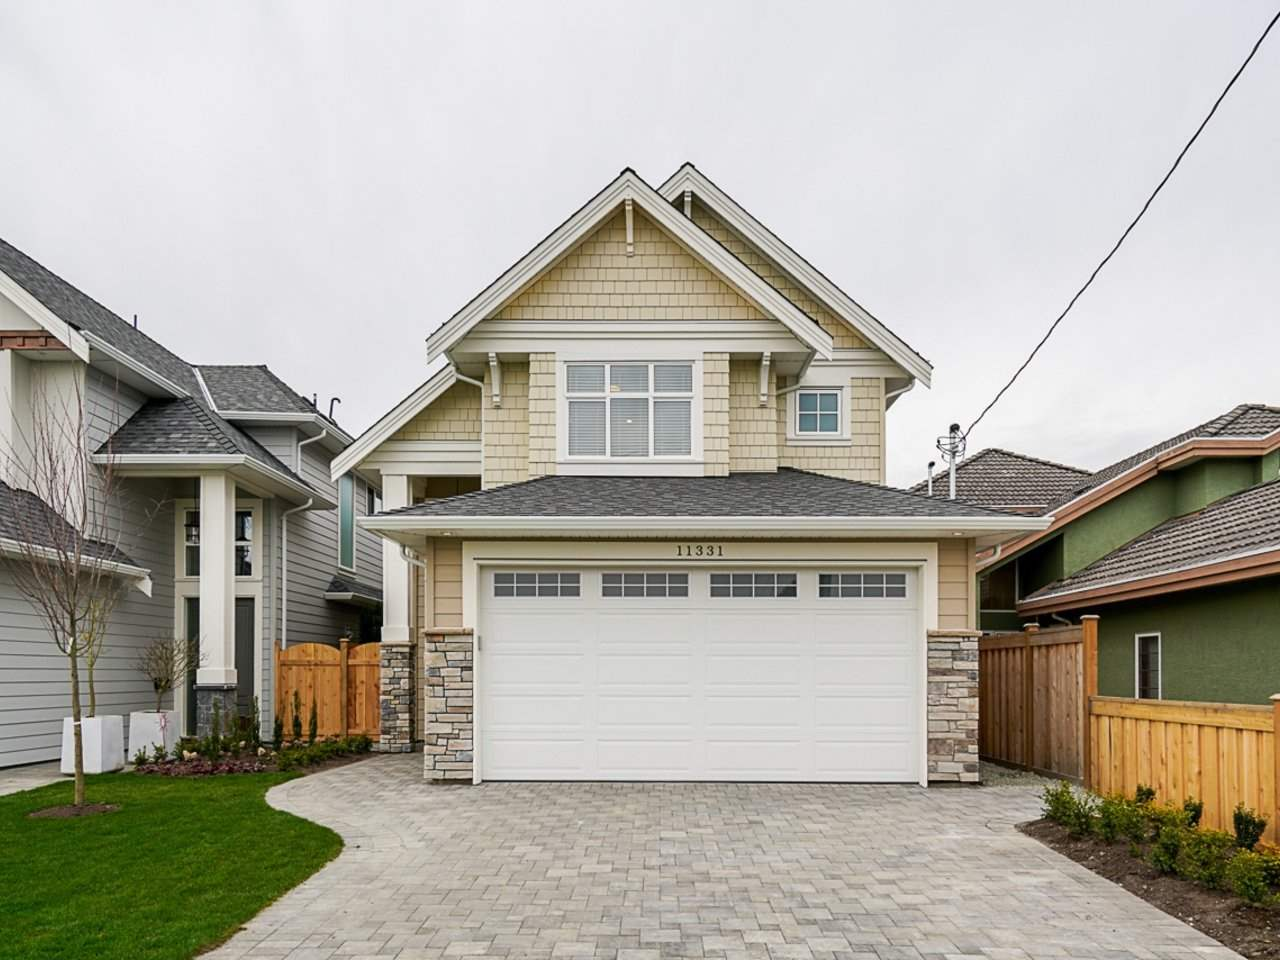 11331 4TH AVENUE - Steveston Village House/Single Family for sale, 4 Bedrooms (R2561100)